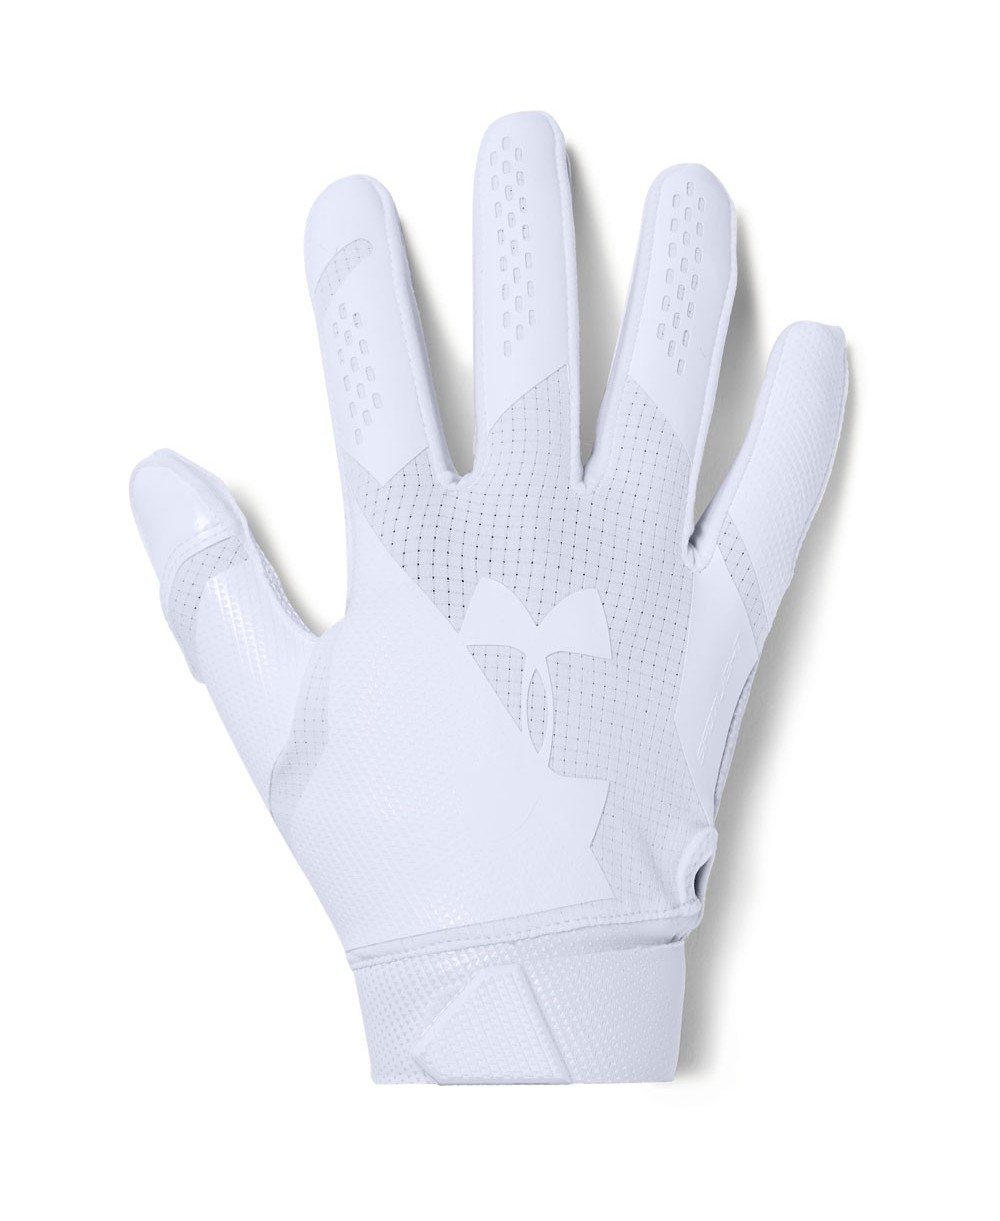 5abc829eac1 Spotlight NFL Men s American Football Gloves White